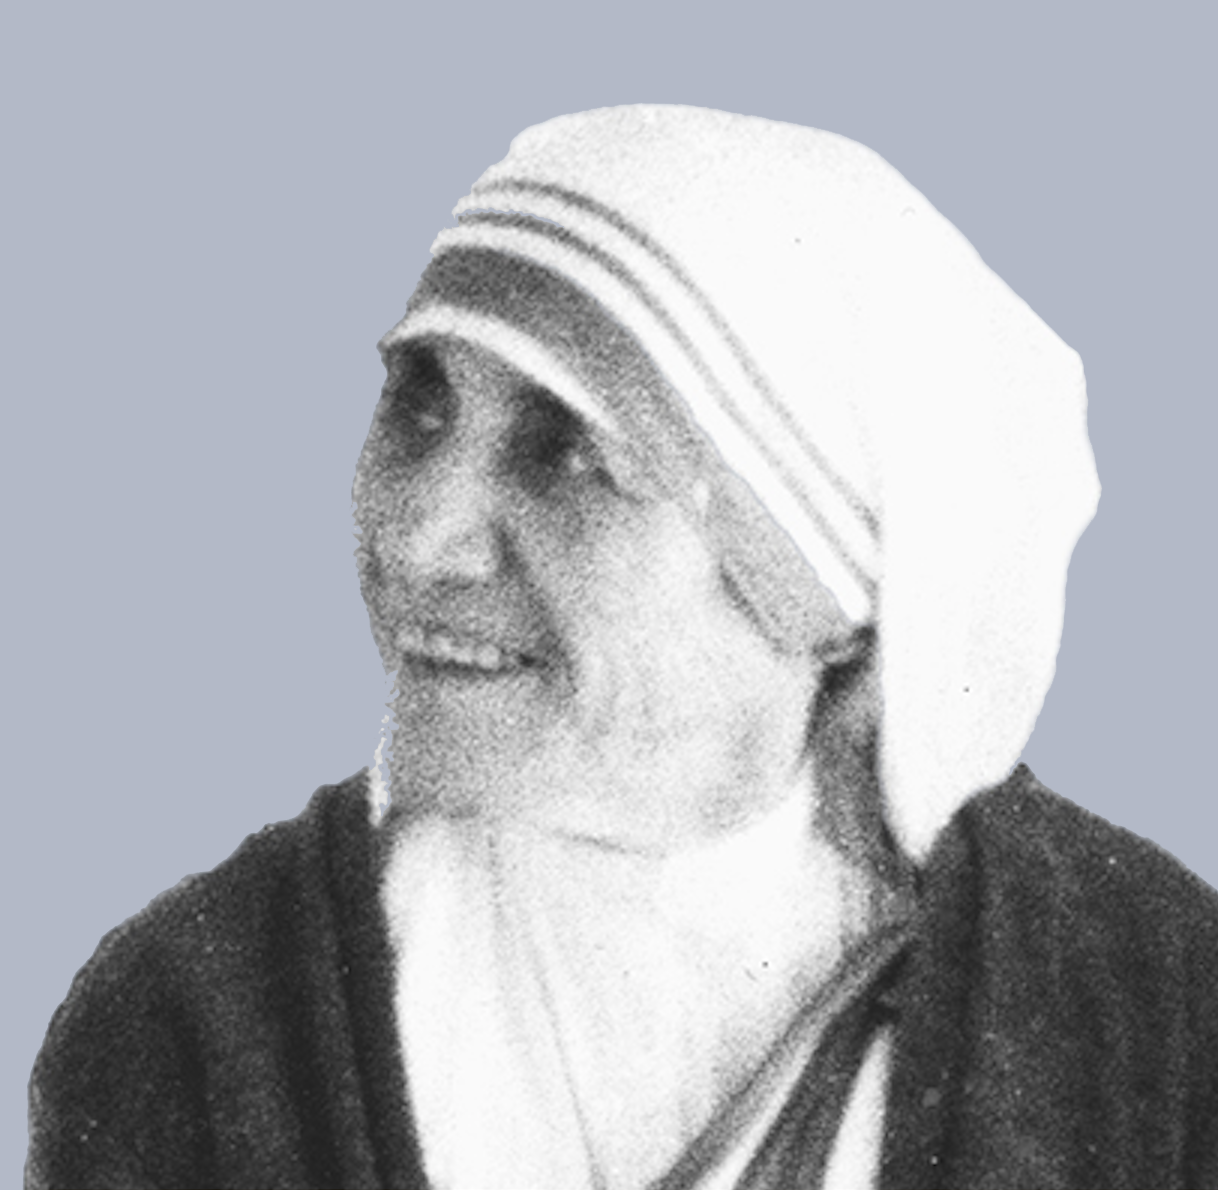 Mother Teresa's call within a call